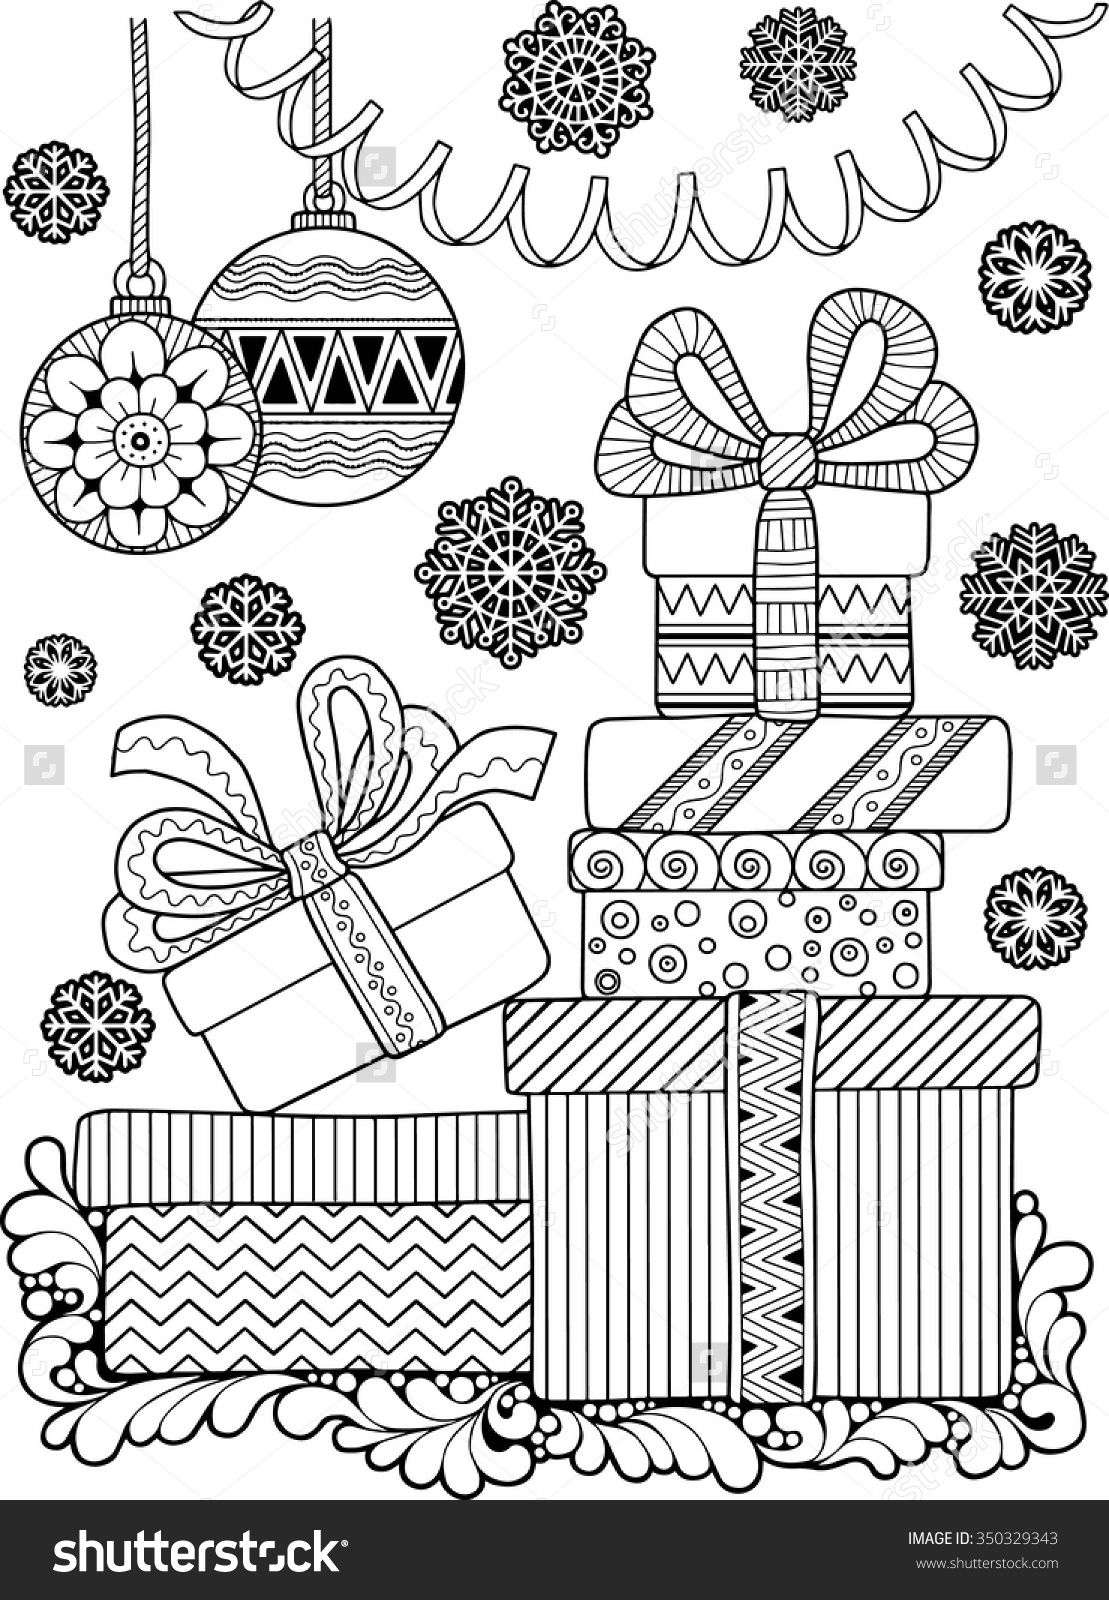 Christmas coloring page Shutterstock 350329343 Christmas